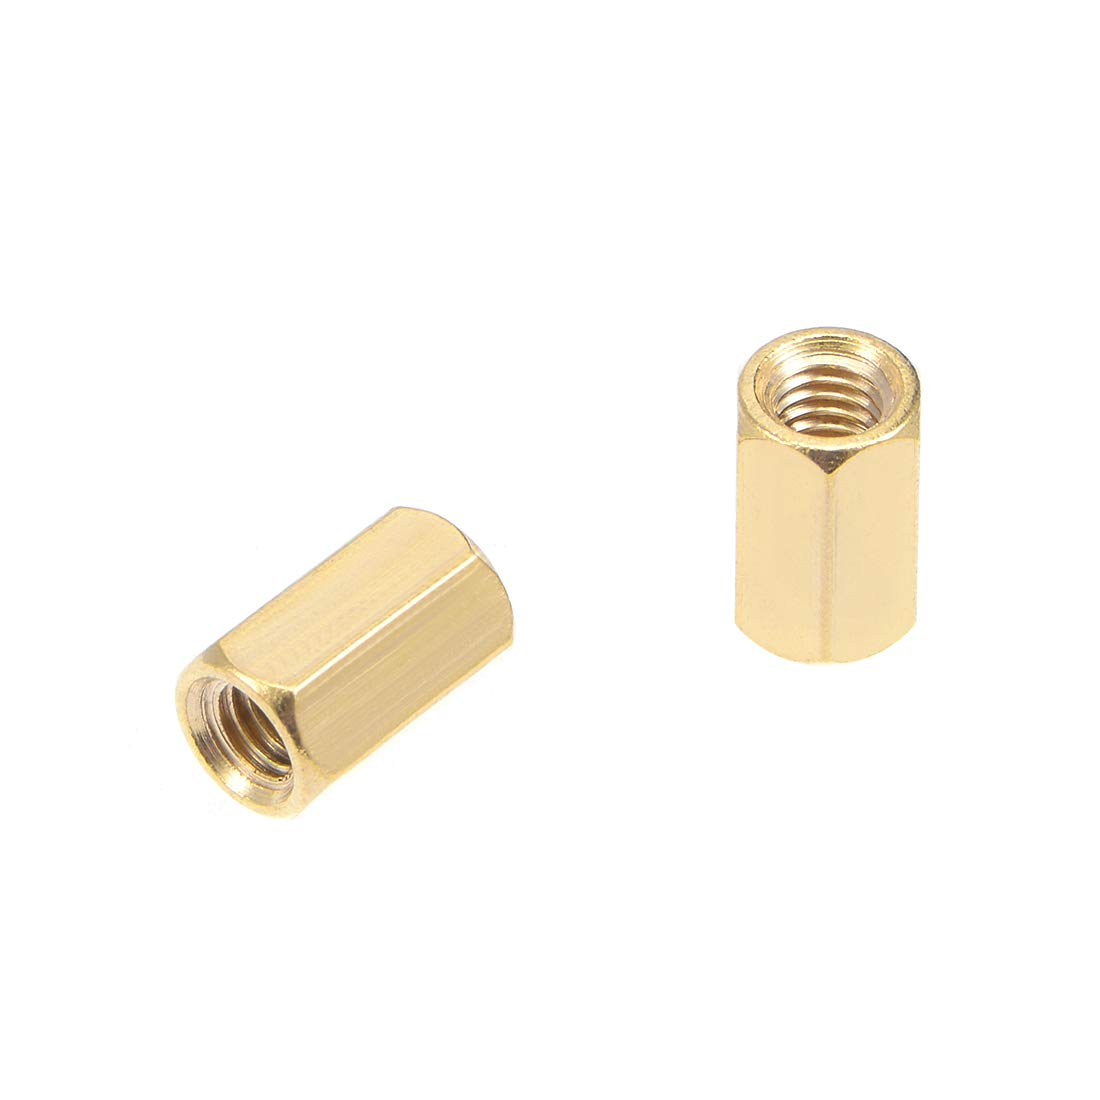 Computer /& Circuit Board 72pcs uxcell M2.5x7mm+6mm Male-Female Brass Hex PCB Motherboard Spacer Standoff Screw Nut Kit for FPV Drone Quadcopter